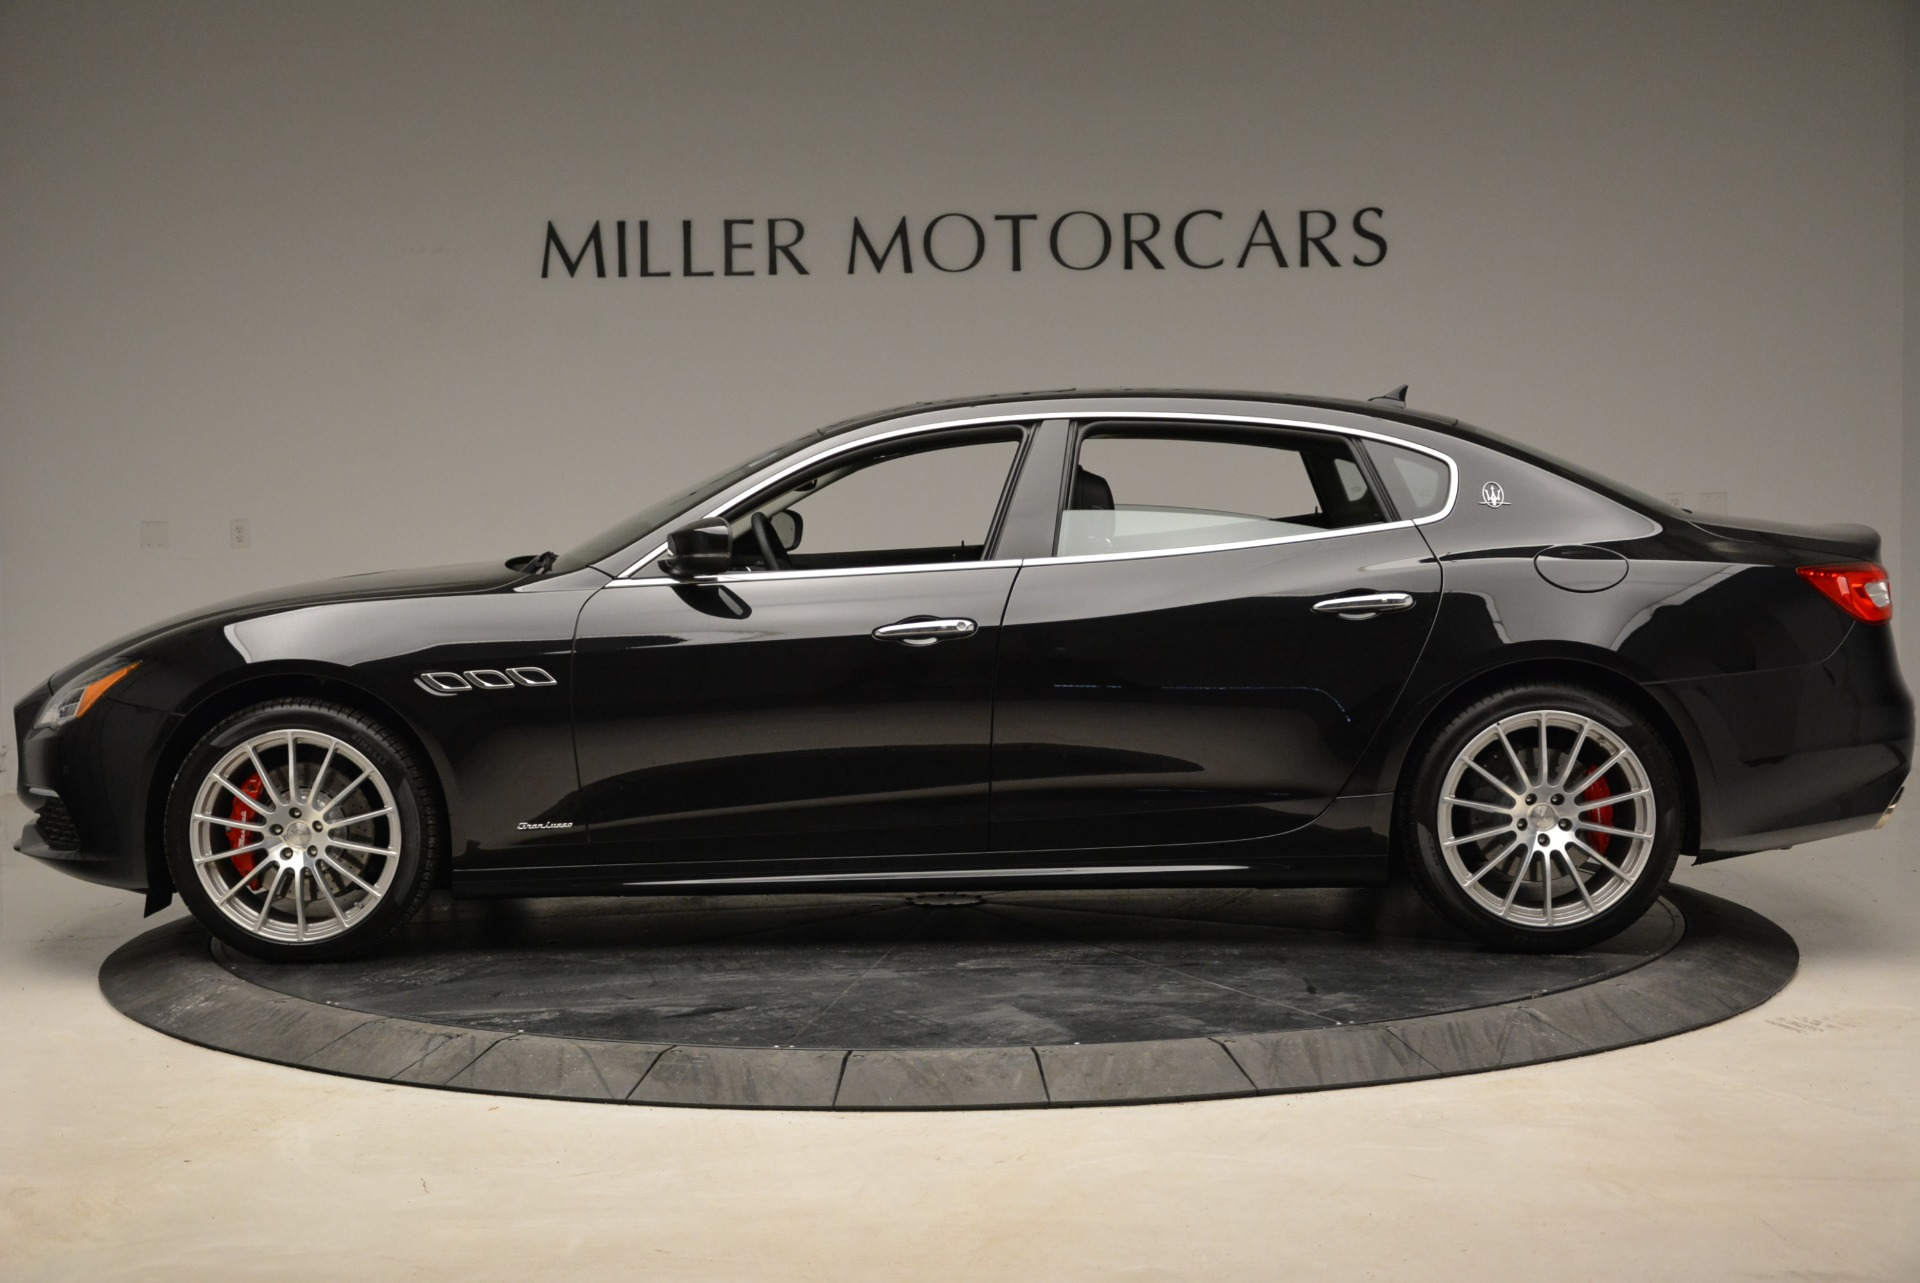 New 2018 Maserati Quattroporte S Q4 GranLusso For Sale In Westport, CT 2386_p3